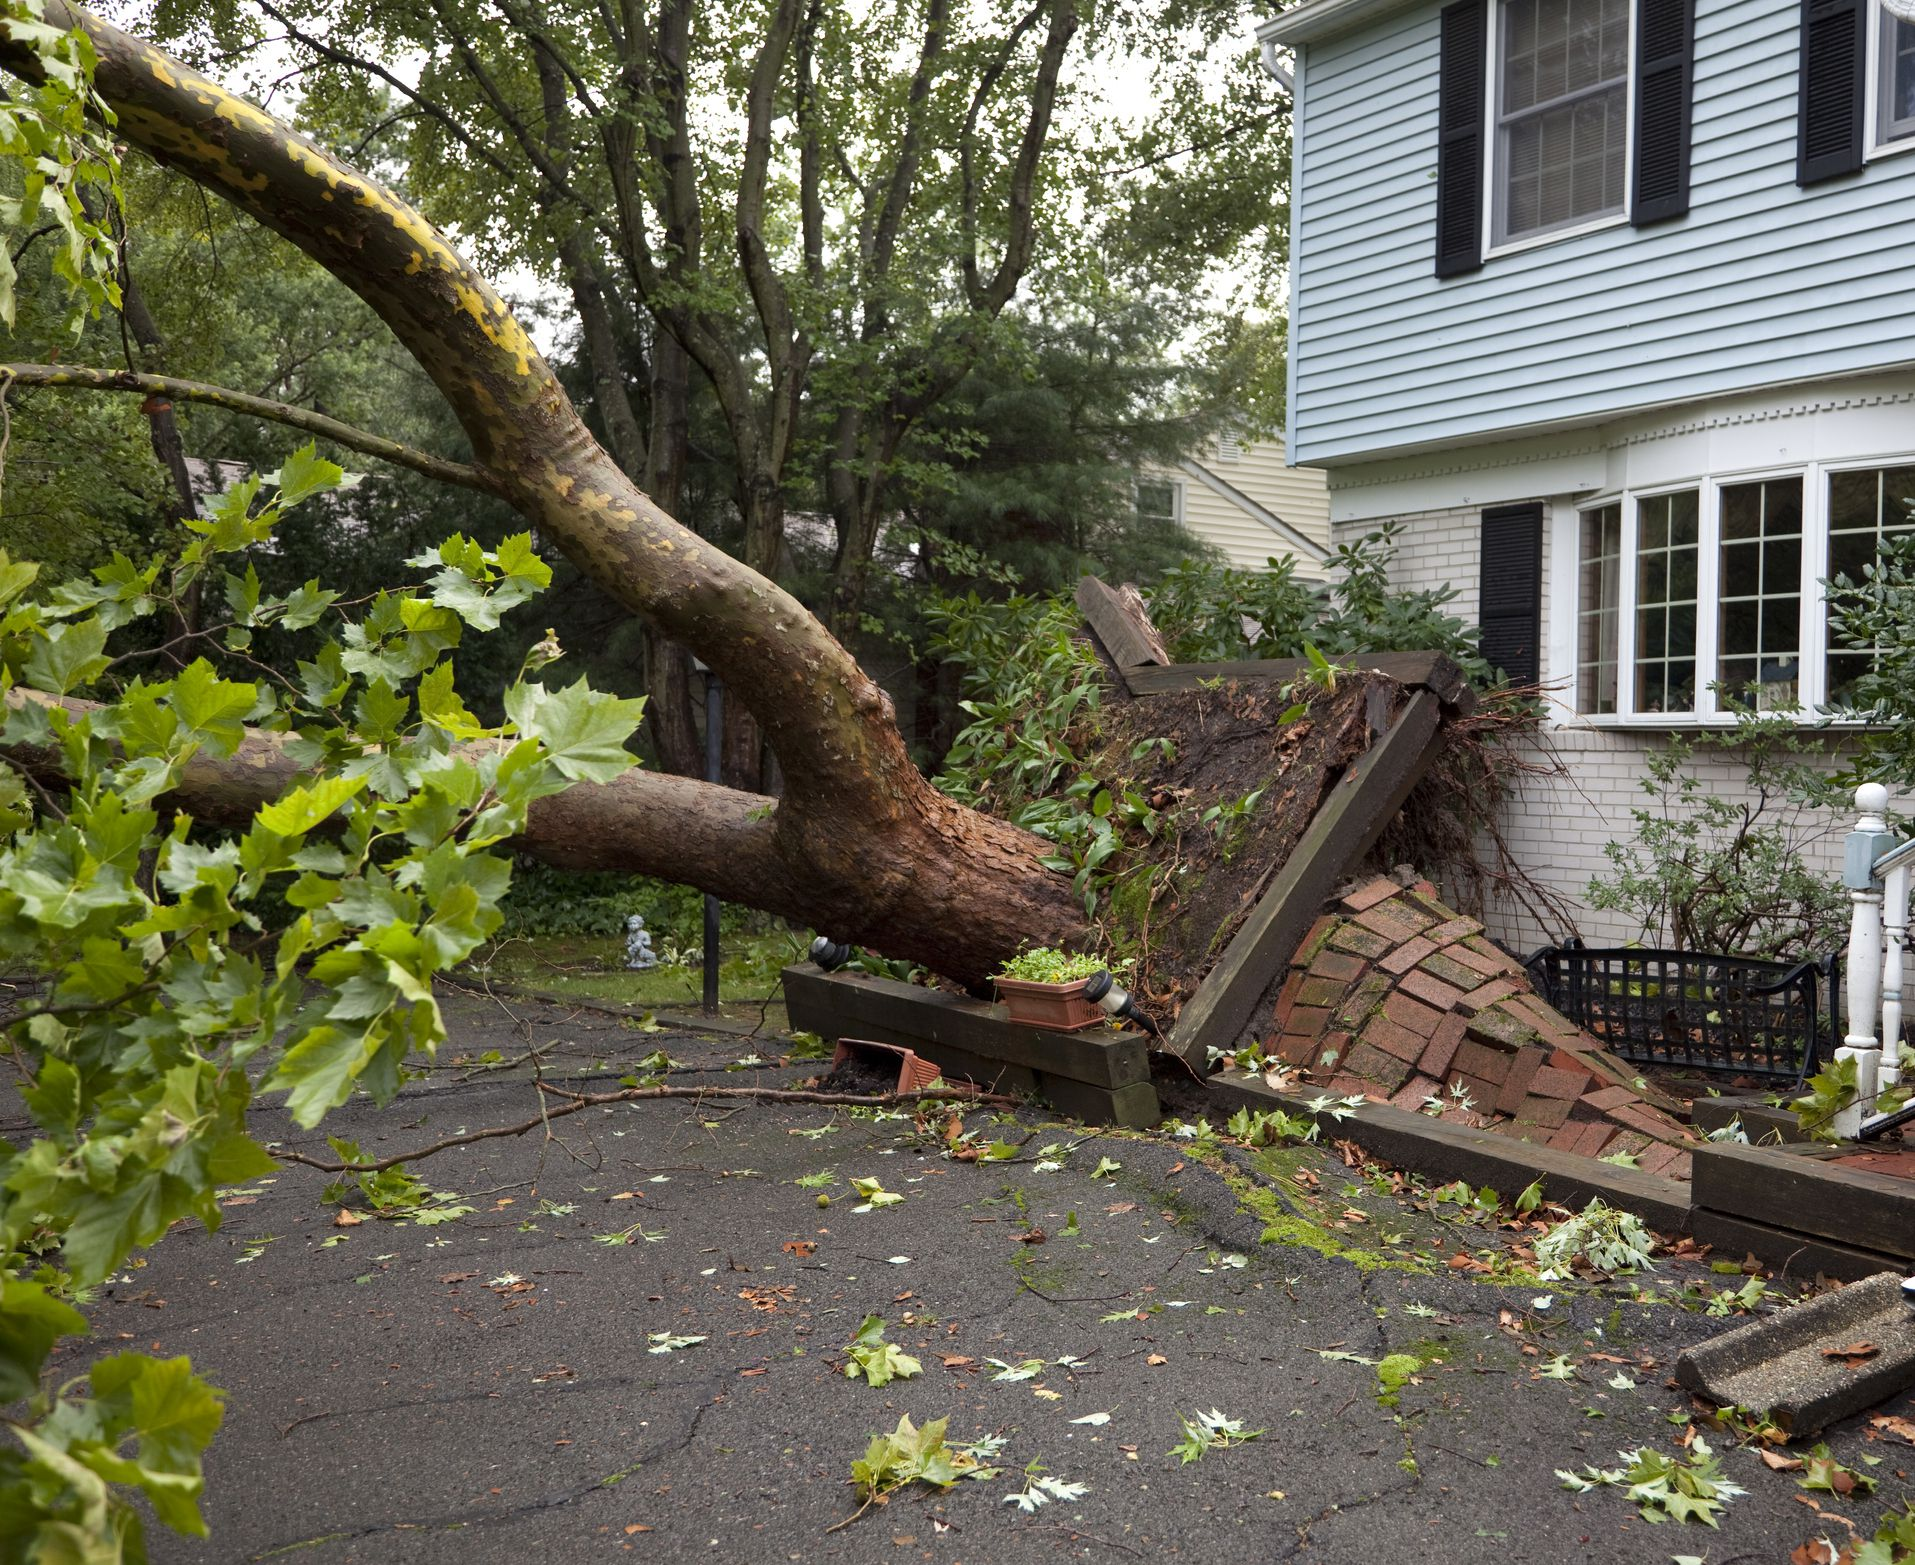 Online Auto Insurance >> Home Insurance Claims and Damage Caused by Trees